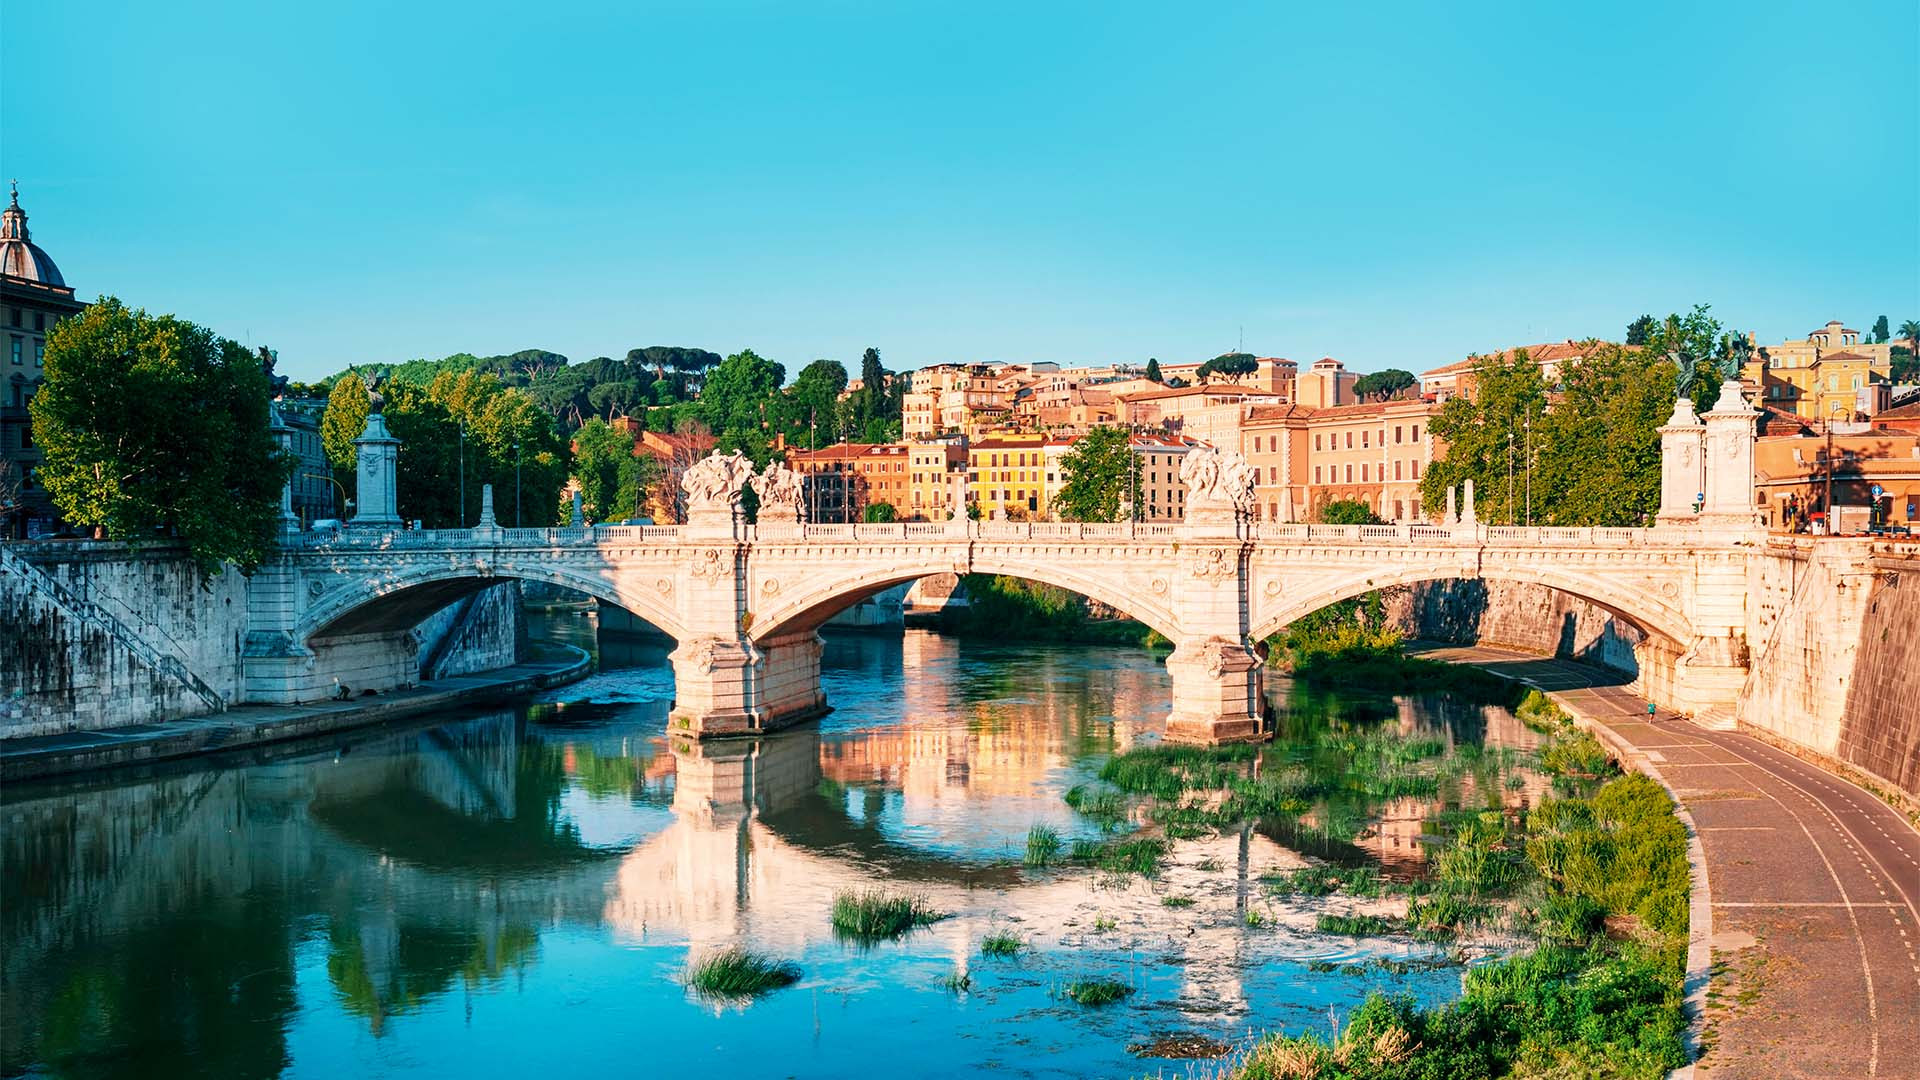 St. Angelo Bridge (Ponte Sant Angelo) and the Trastevere district in Rome with River Tiber